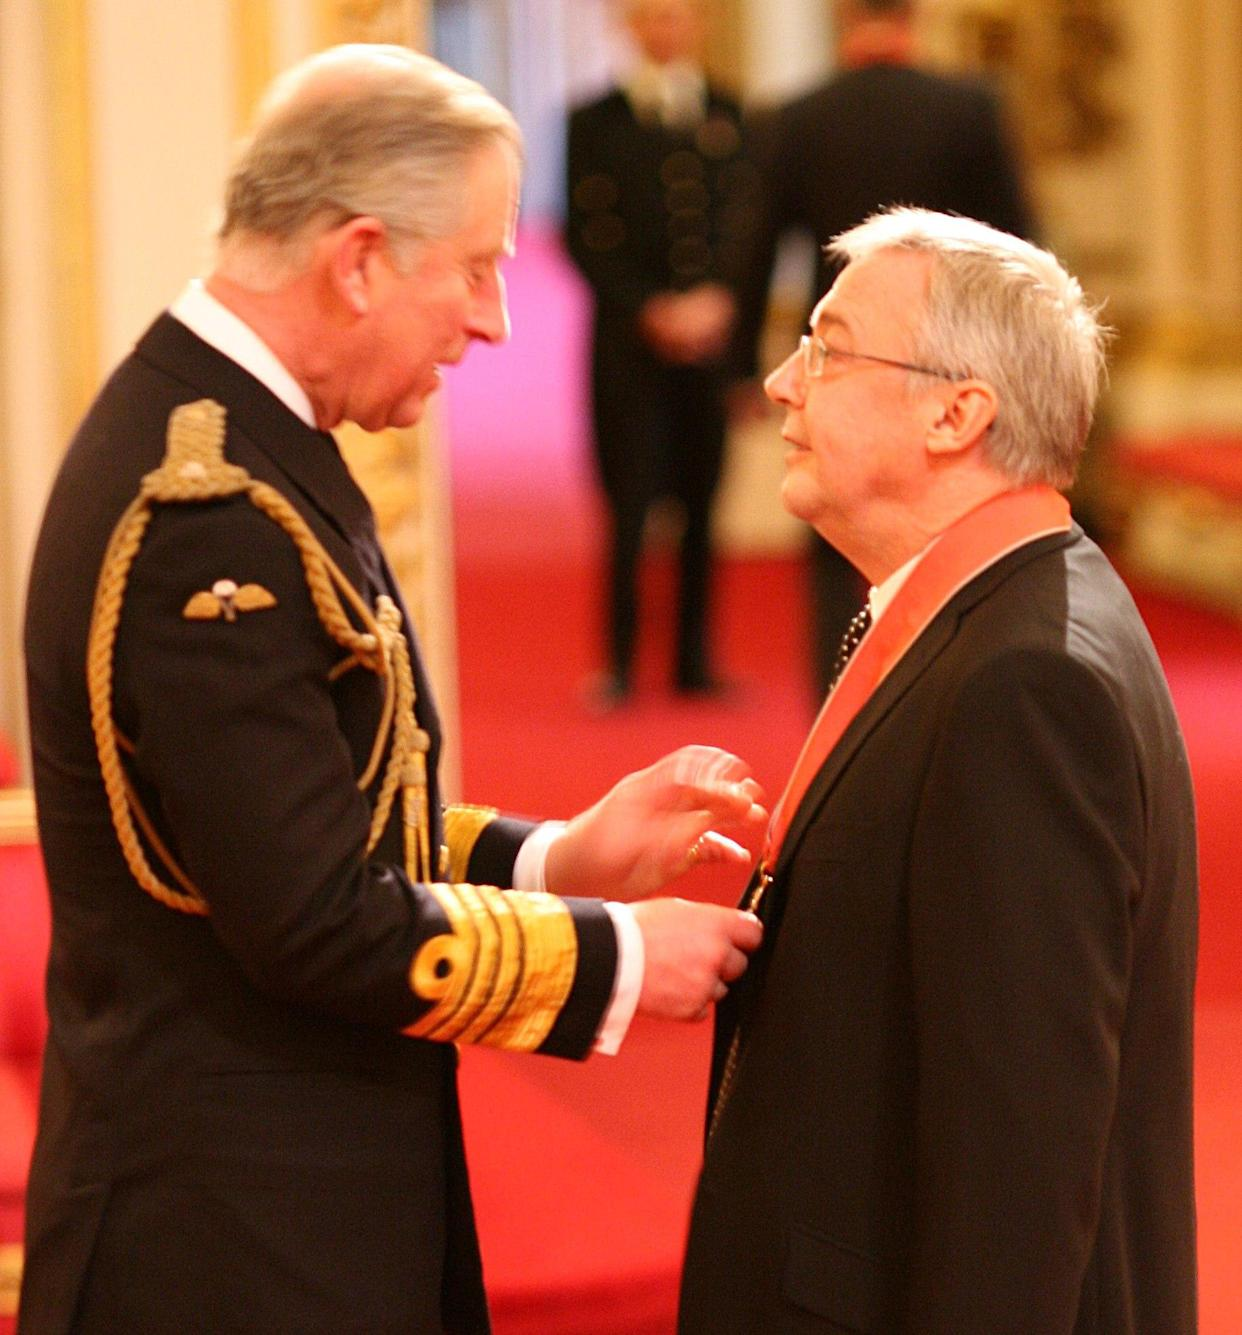 Graham Vick, artistic director of the Birmingham Opera Company, receives his CBE from the Prince of Wales during investitures at Buckingham Palace in London.